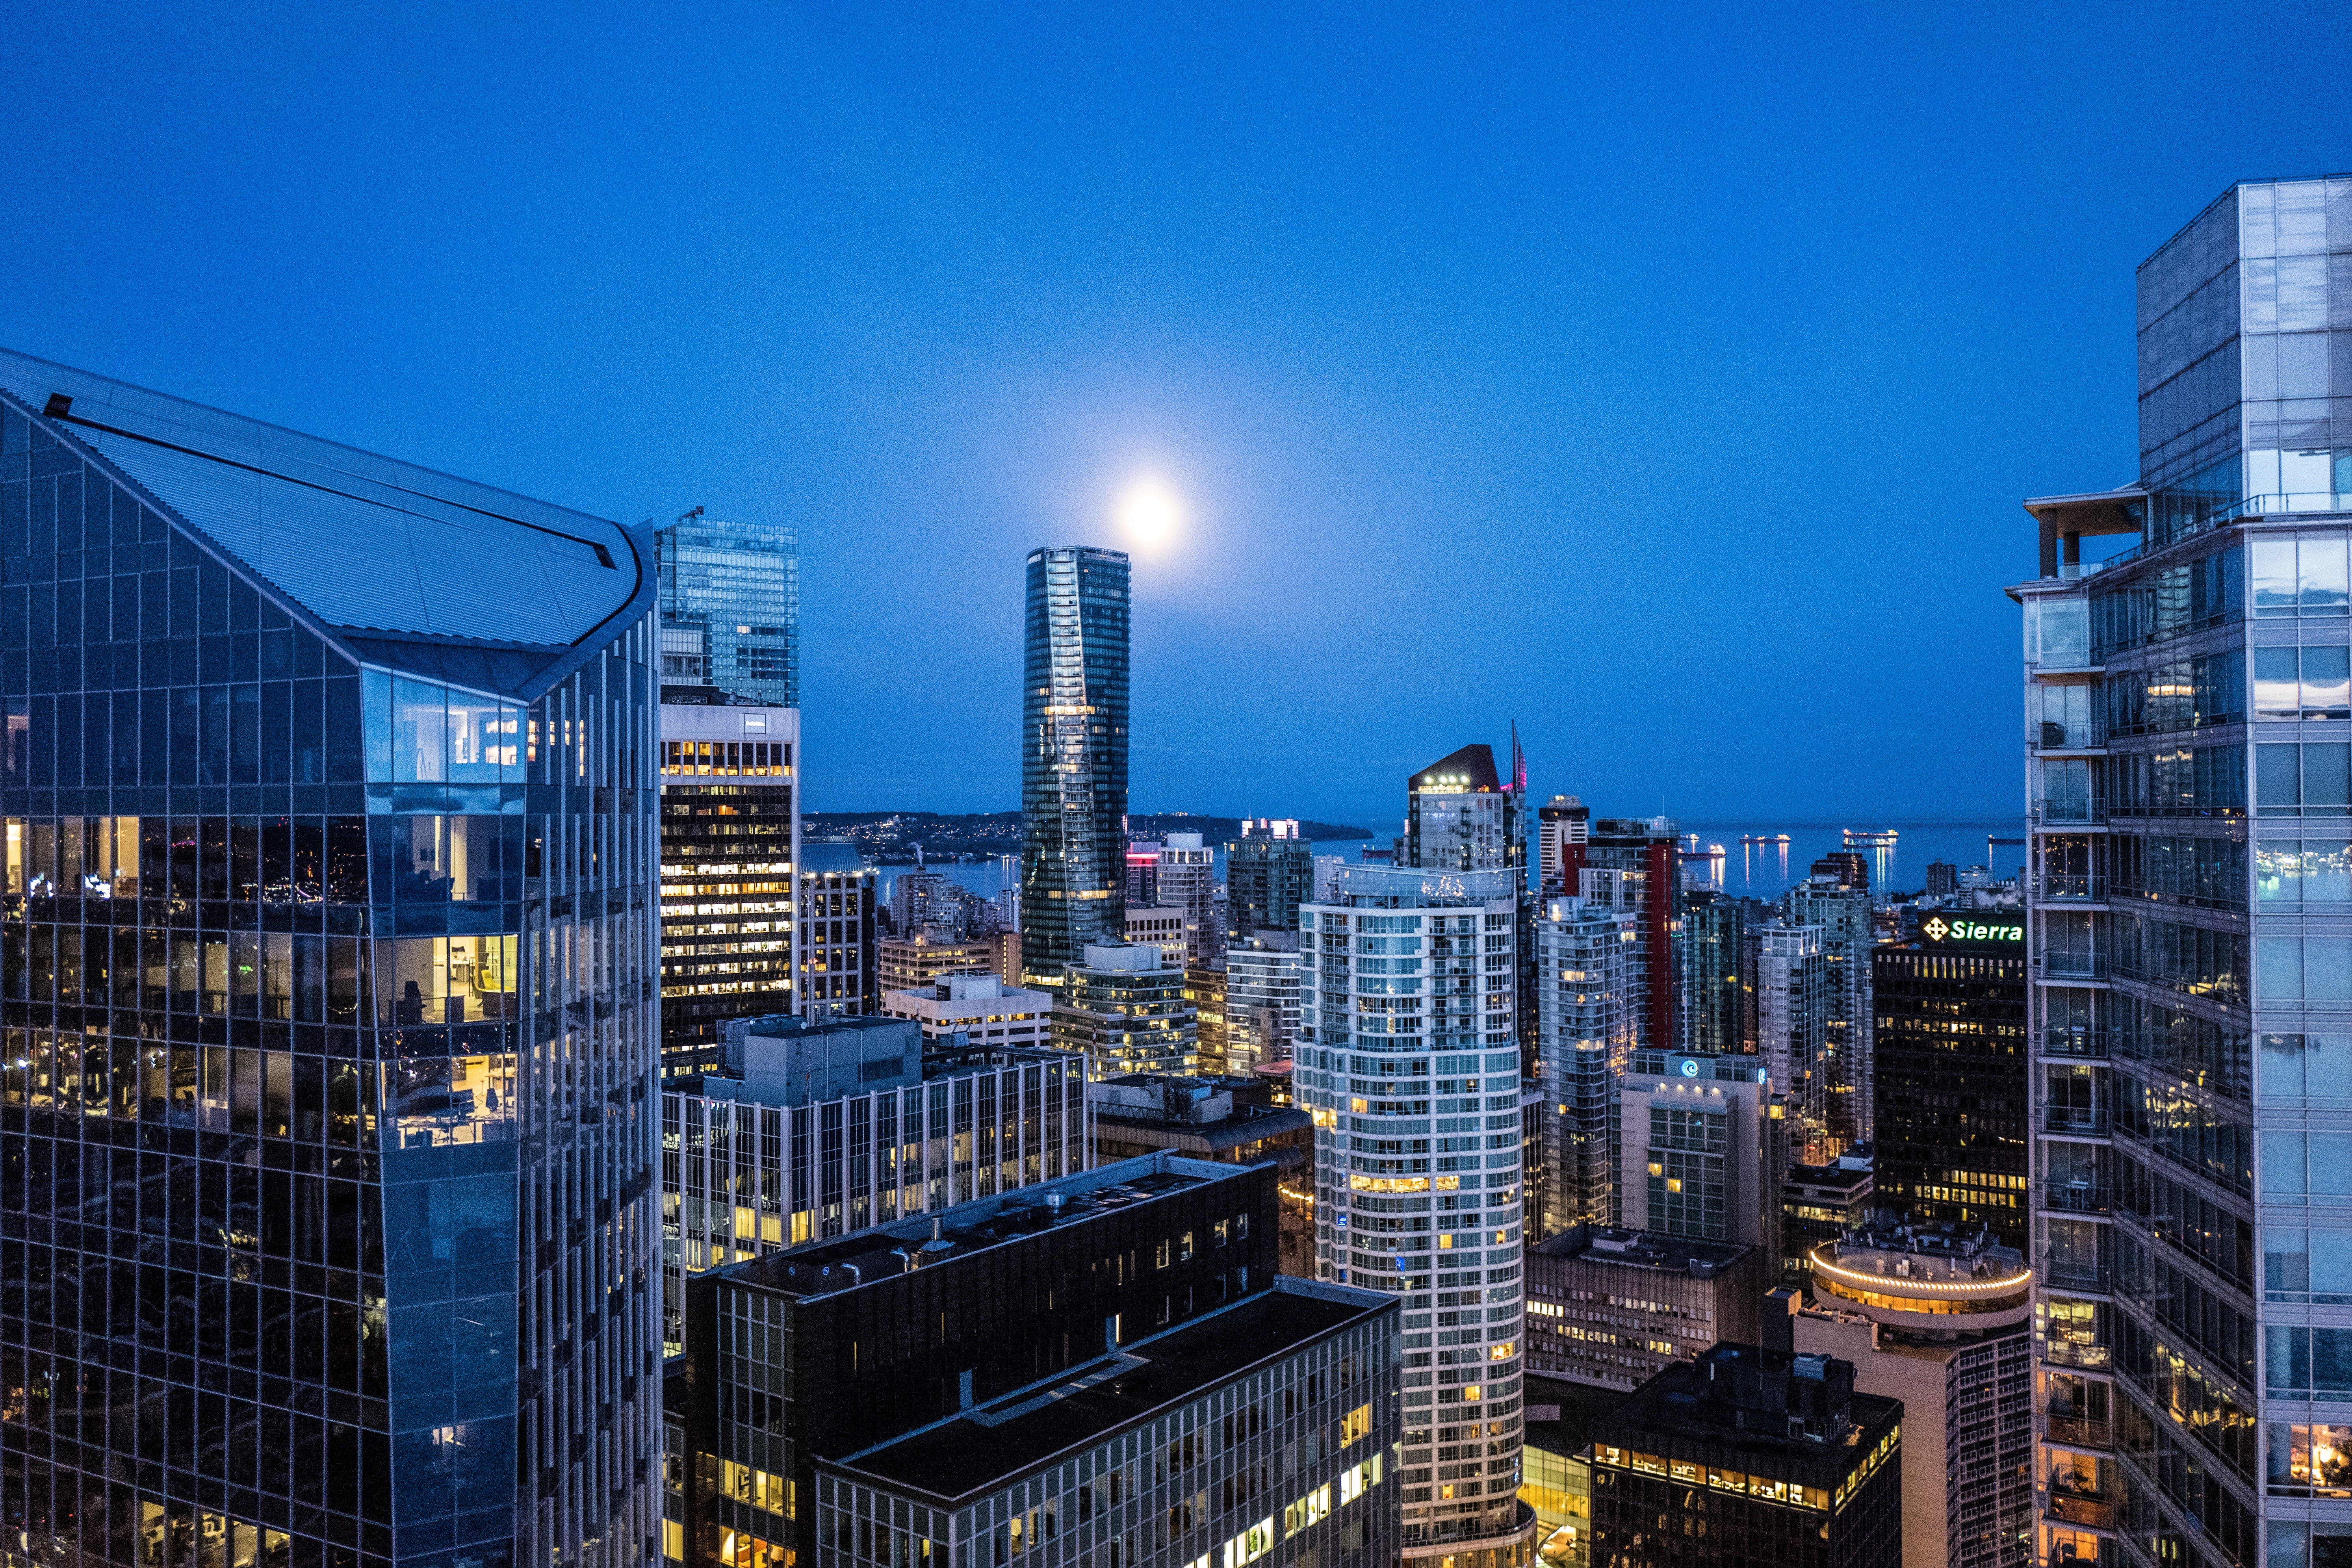 Photography of Buildings During Night Time